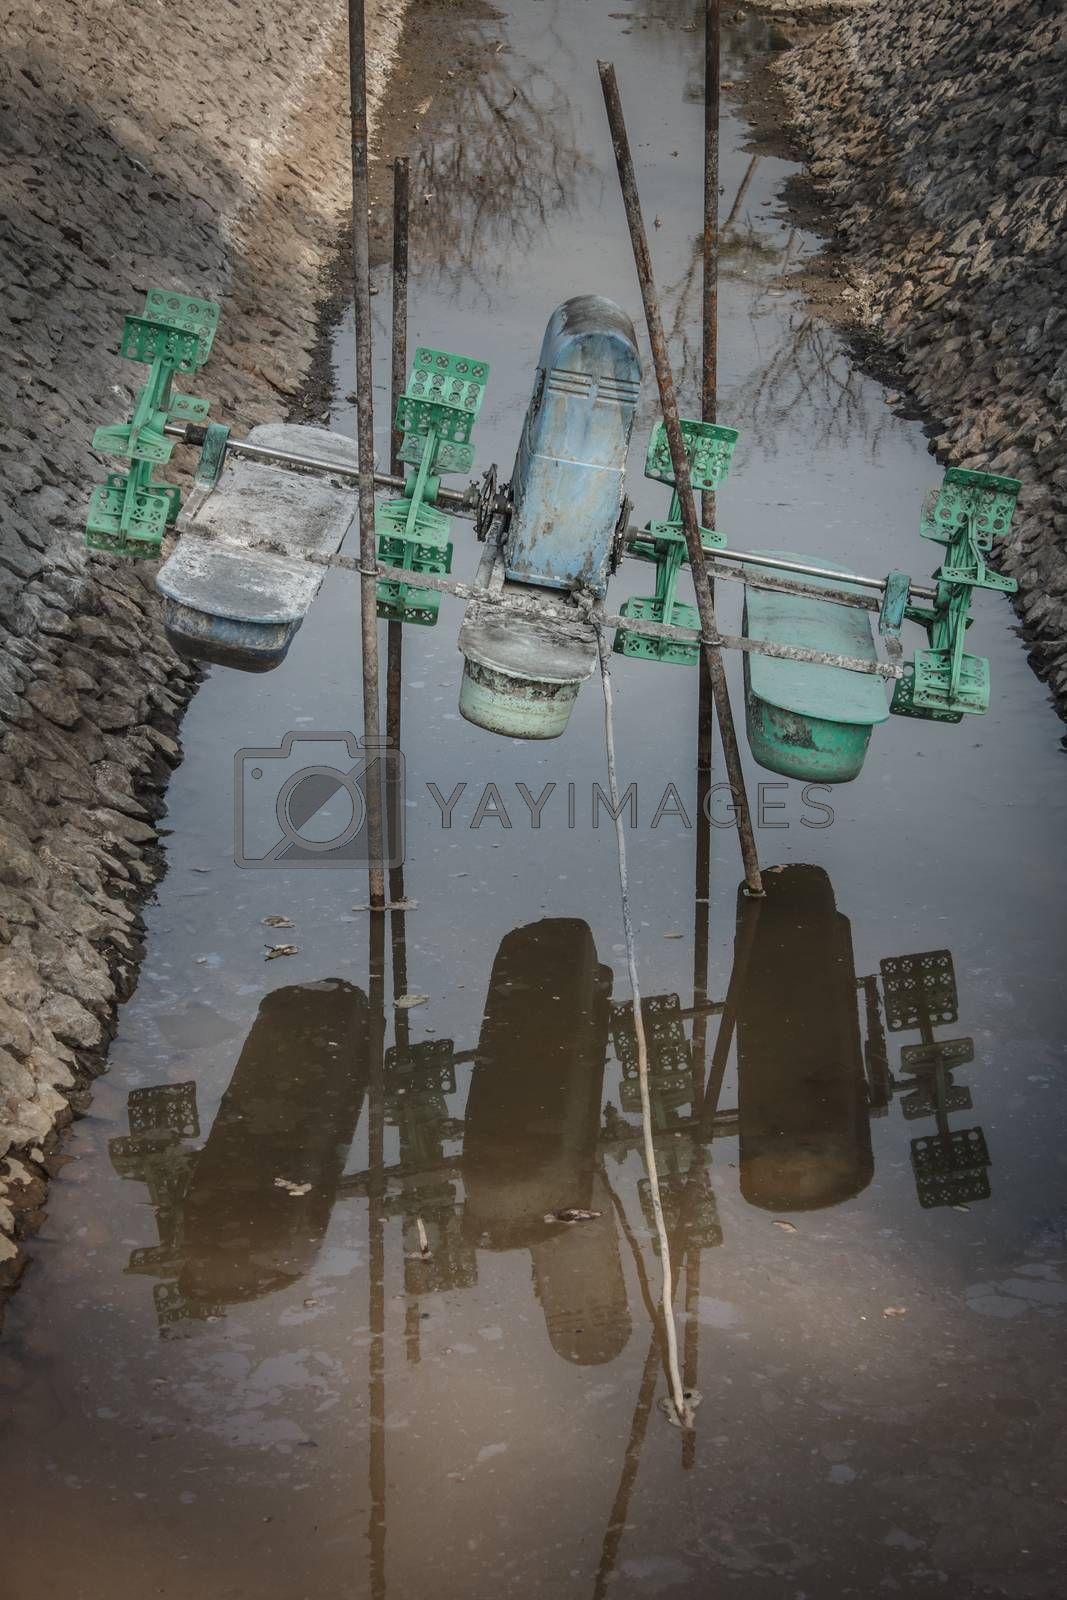 Royalty free image of water wheel without water by letoakin